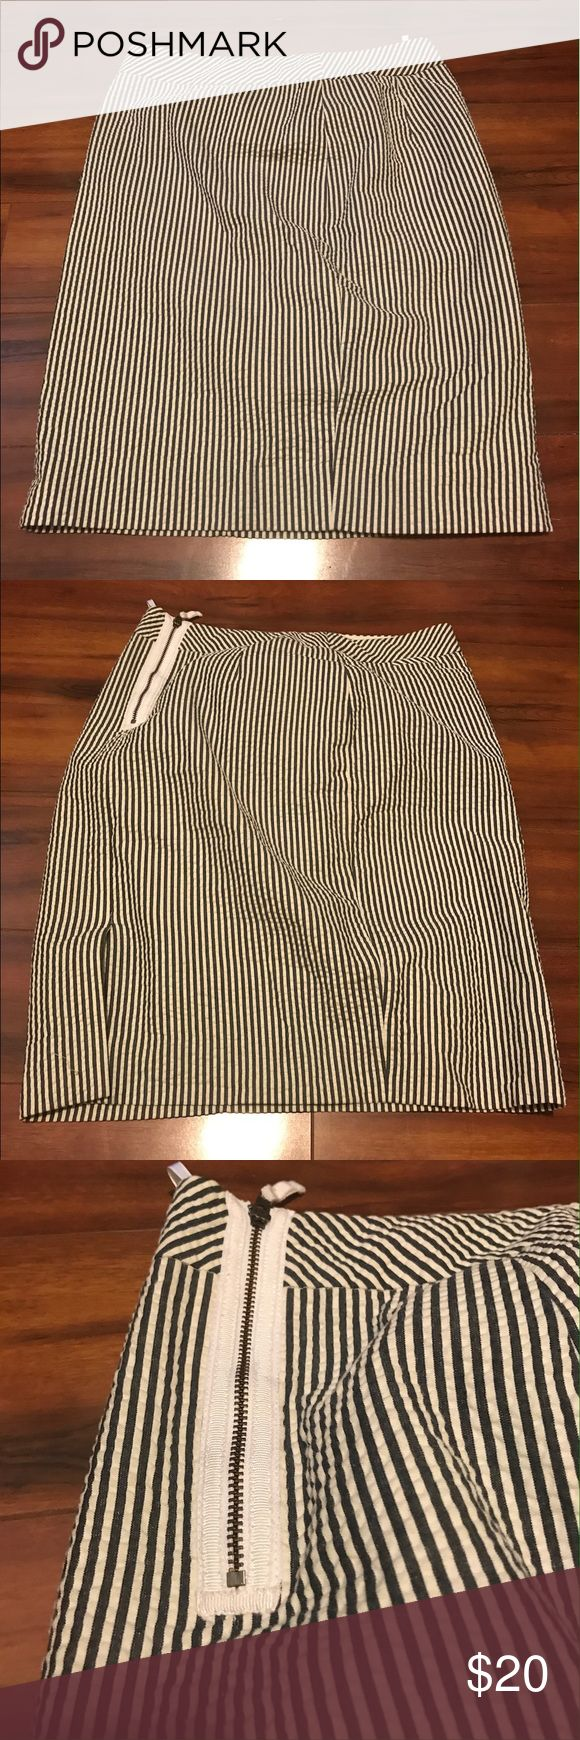 J-crew striped pencil skirt Blue and white stripe pencil skirt! J. Crew Skirts Pencil